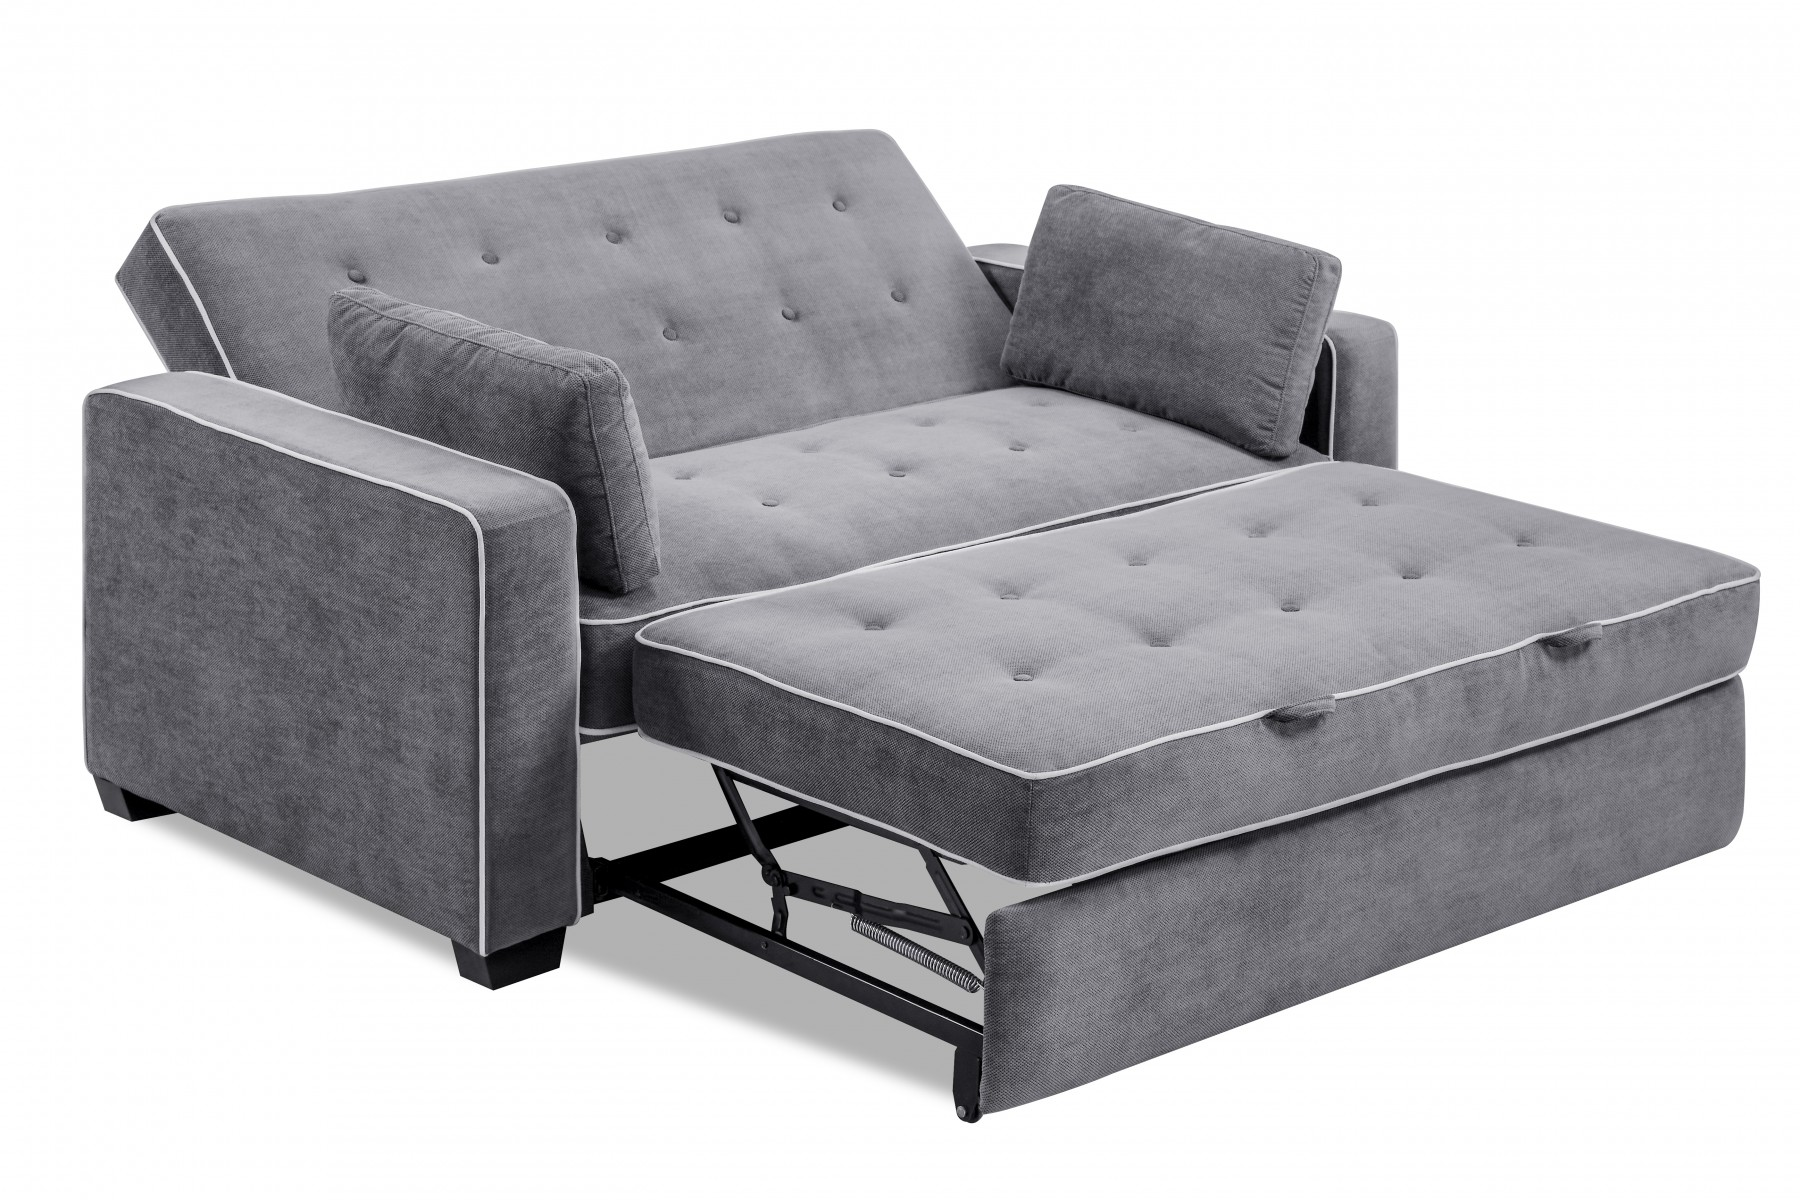 grey leather queen sleeper sofa brown 2 seater gumtree augustine (queen) - lifestyle solutions